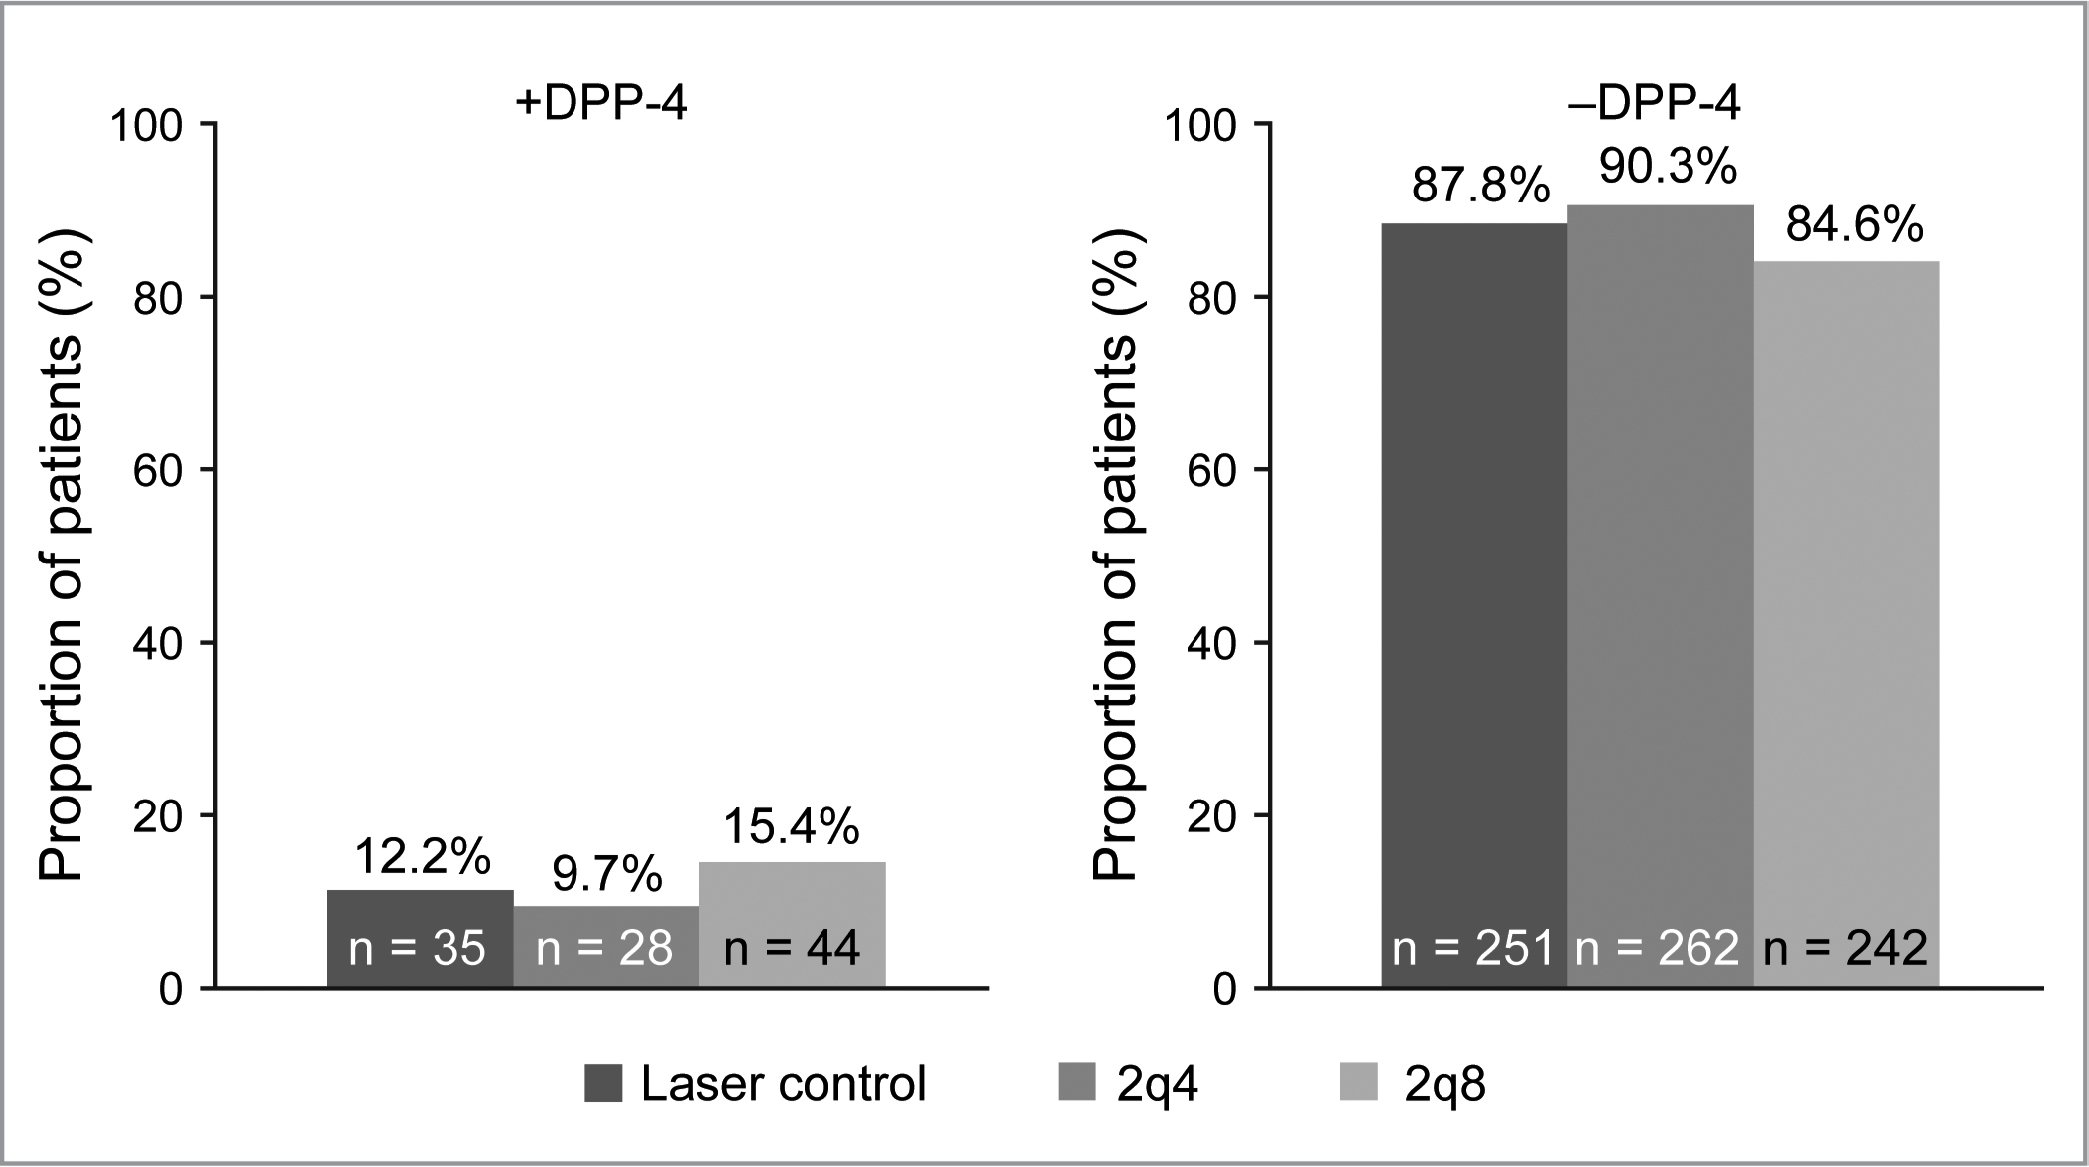 Proportion of patients by reported dipeptidyl peptidase-4 (DPP-4) inhibitor use at baseline. 2q4 = intravitreal aflibercept injection, 2 mg every 4 weeks; 2q8 = intravitreal aflibercept injection, 2 mg every 8 weeks after five initial monthly doses.